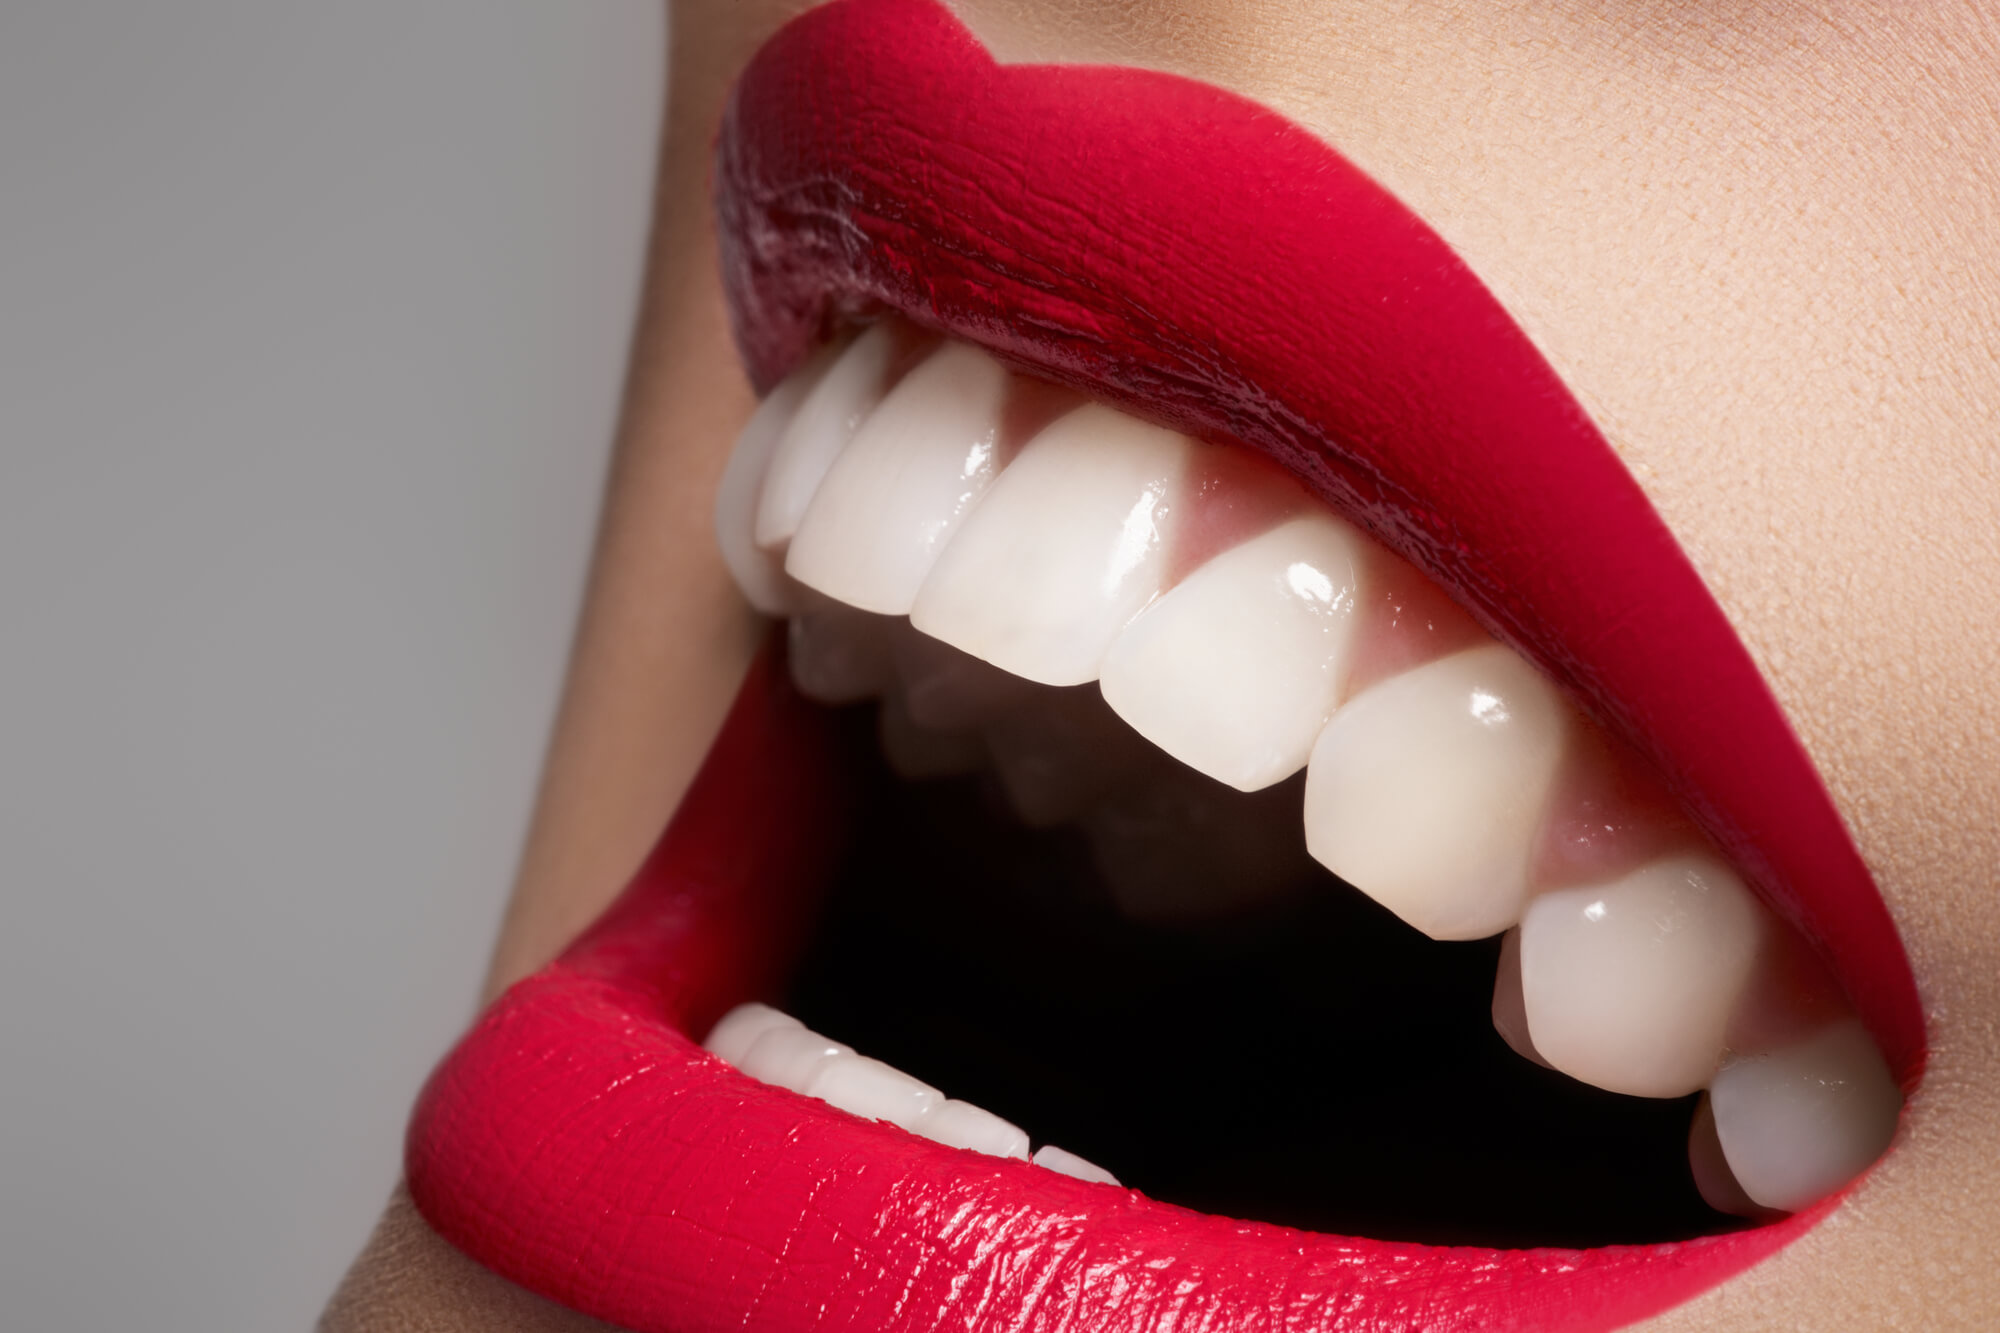 red lips and beautiful, white teeth